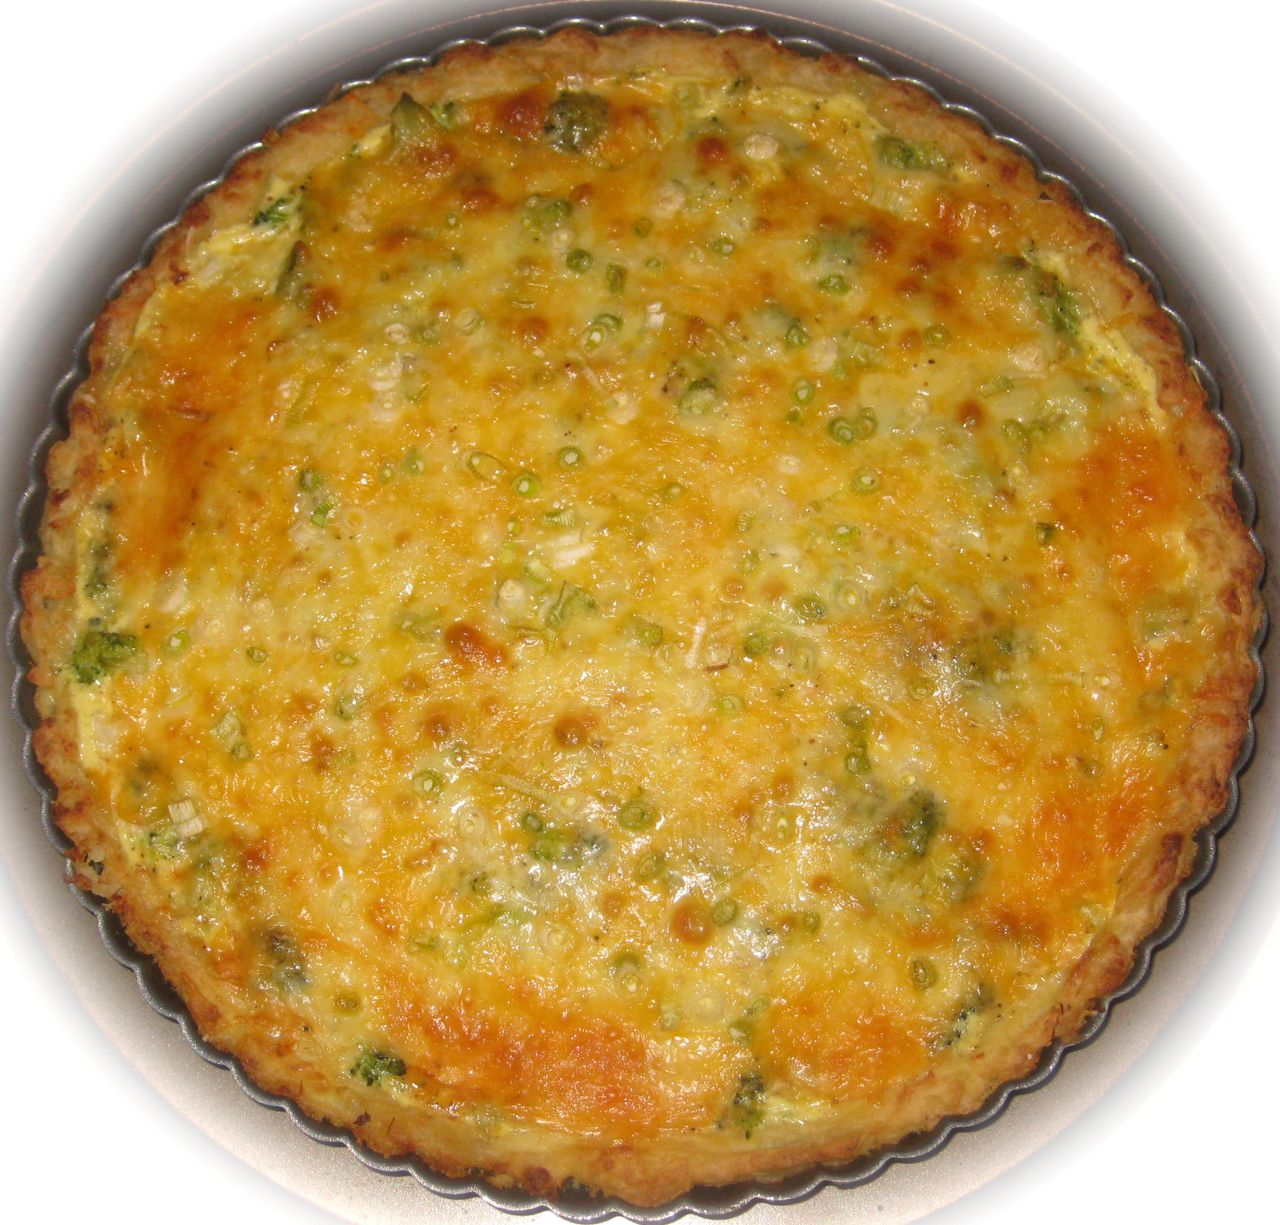 ... Arepas to Zwetschgen: Broccoli Cheese Quiche with Mashed Potato Crust